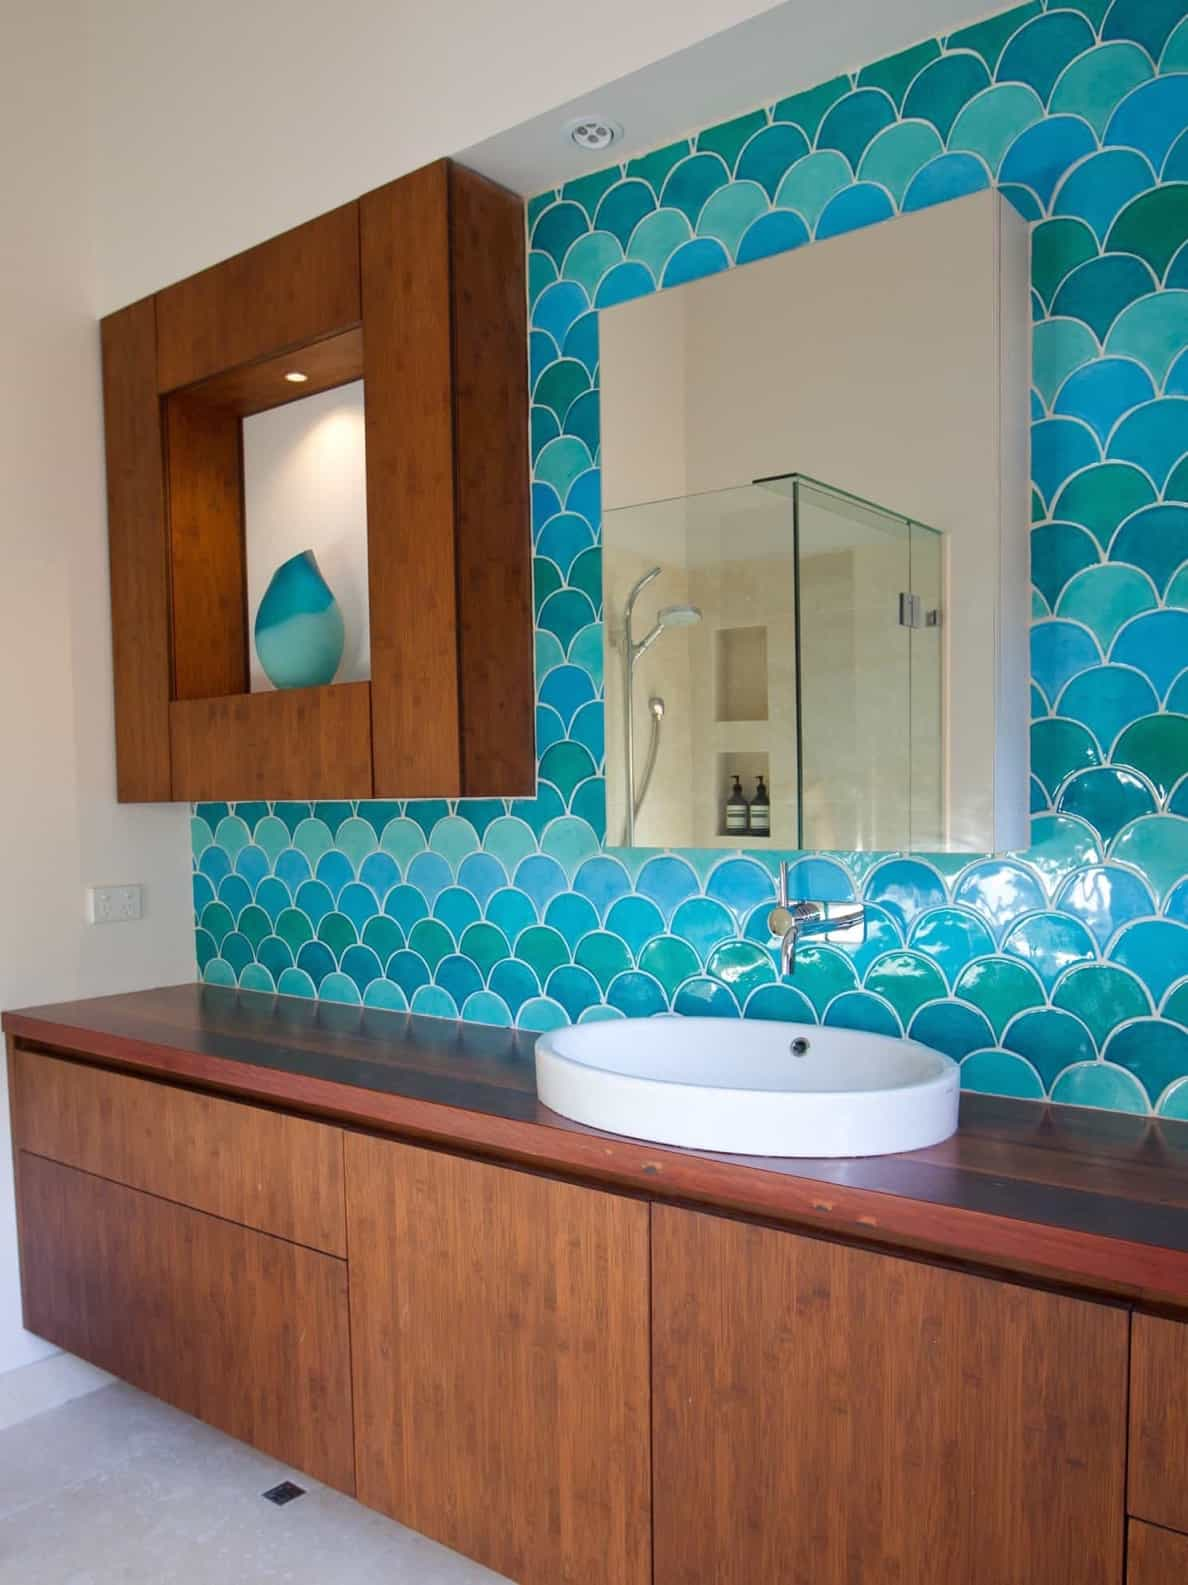 Featured Image of Coastal Themed Bathroom With Blue Tile Bath Vanity